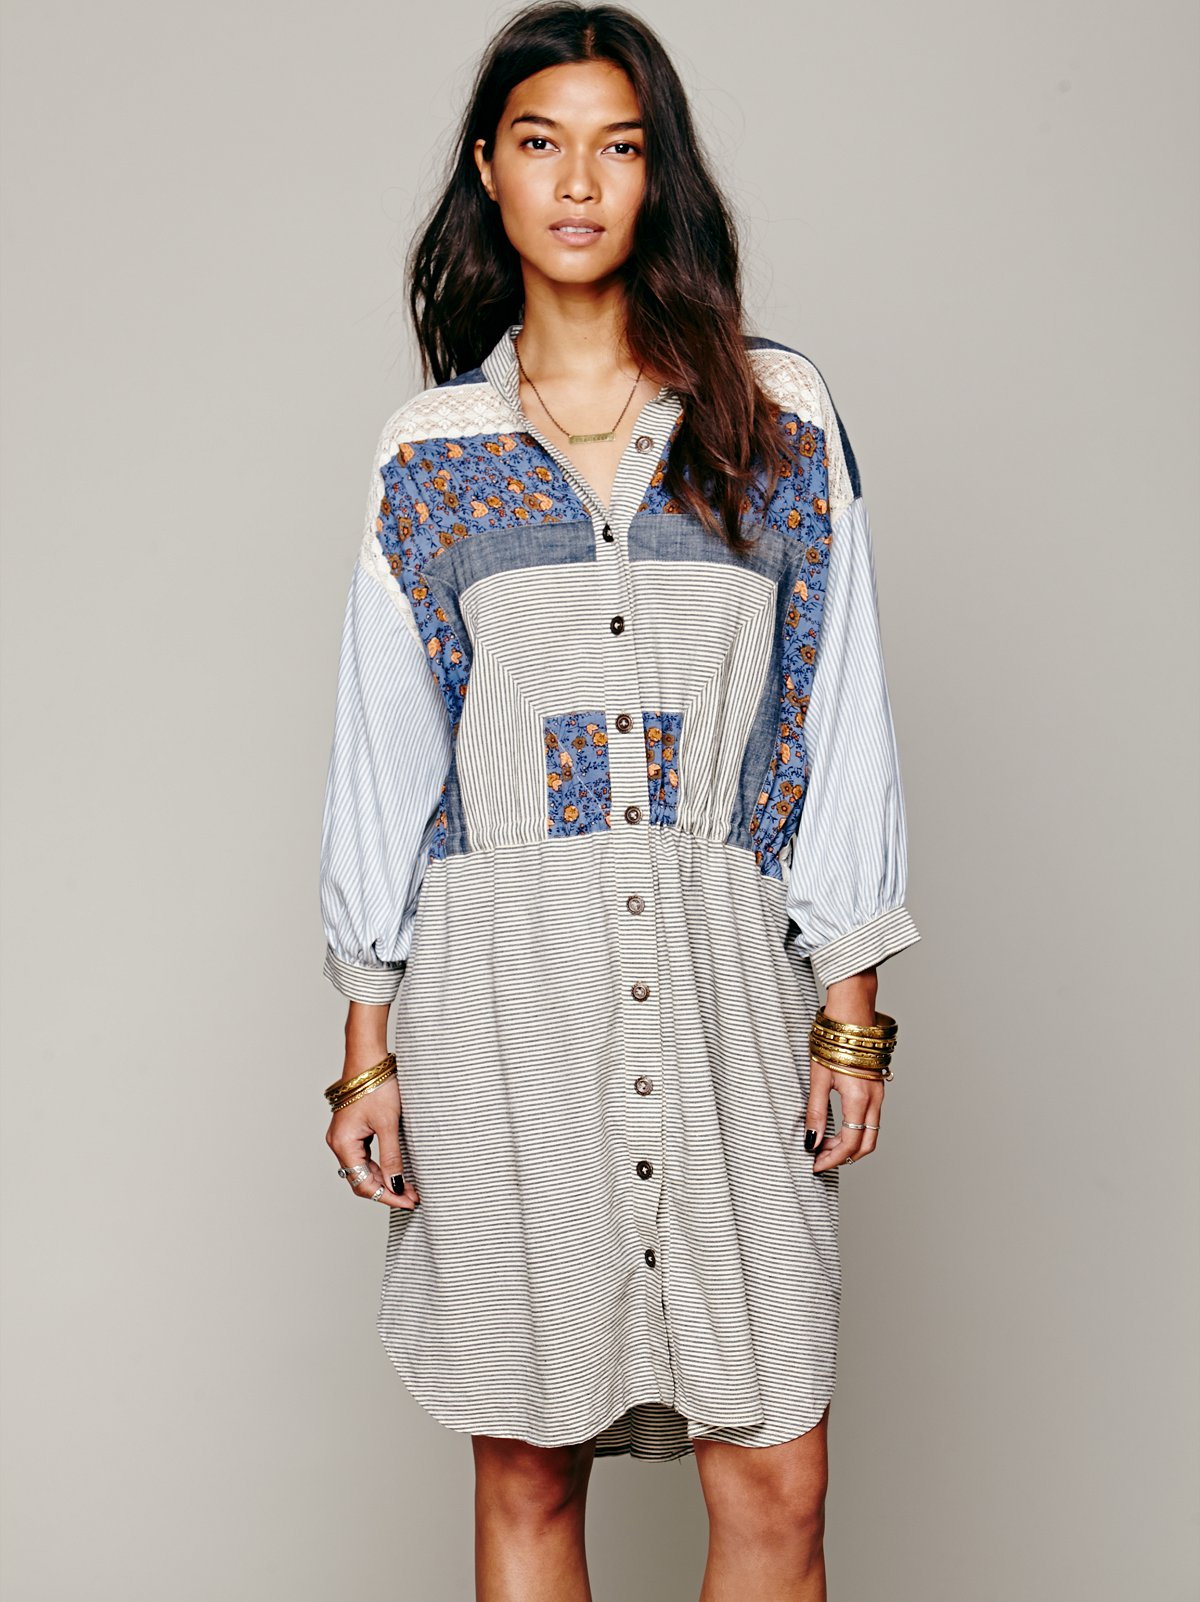 FP New Romantics Go Go Kyoto Shirt Dress